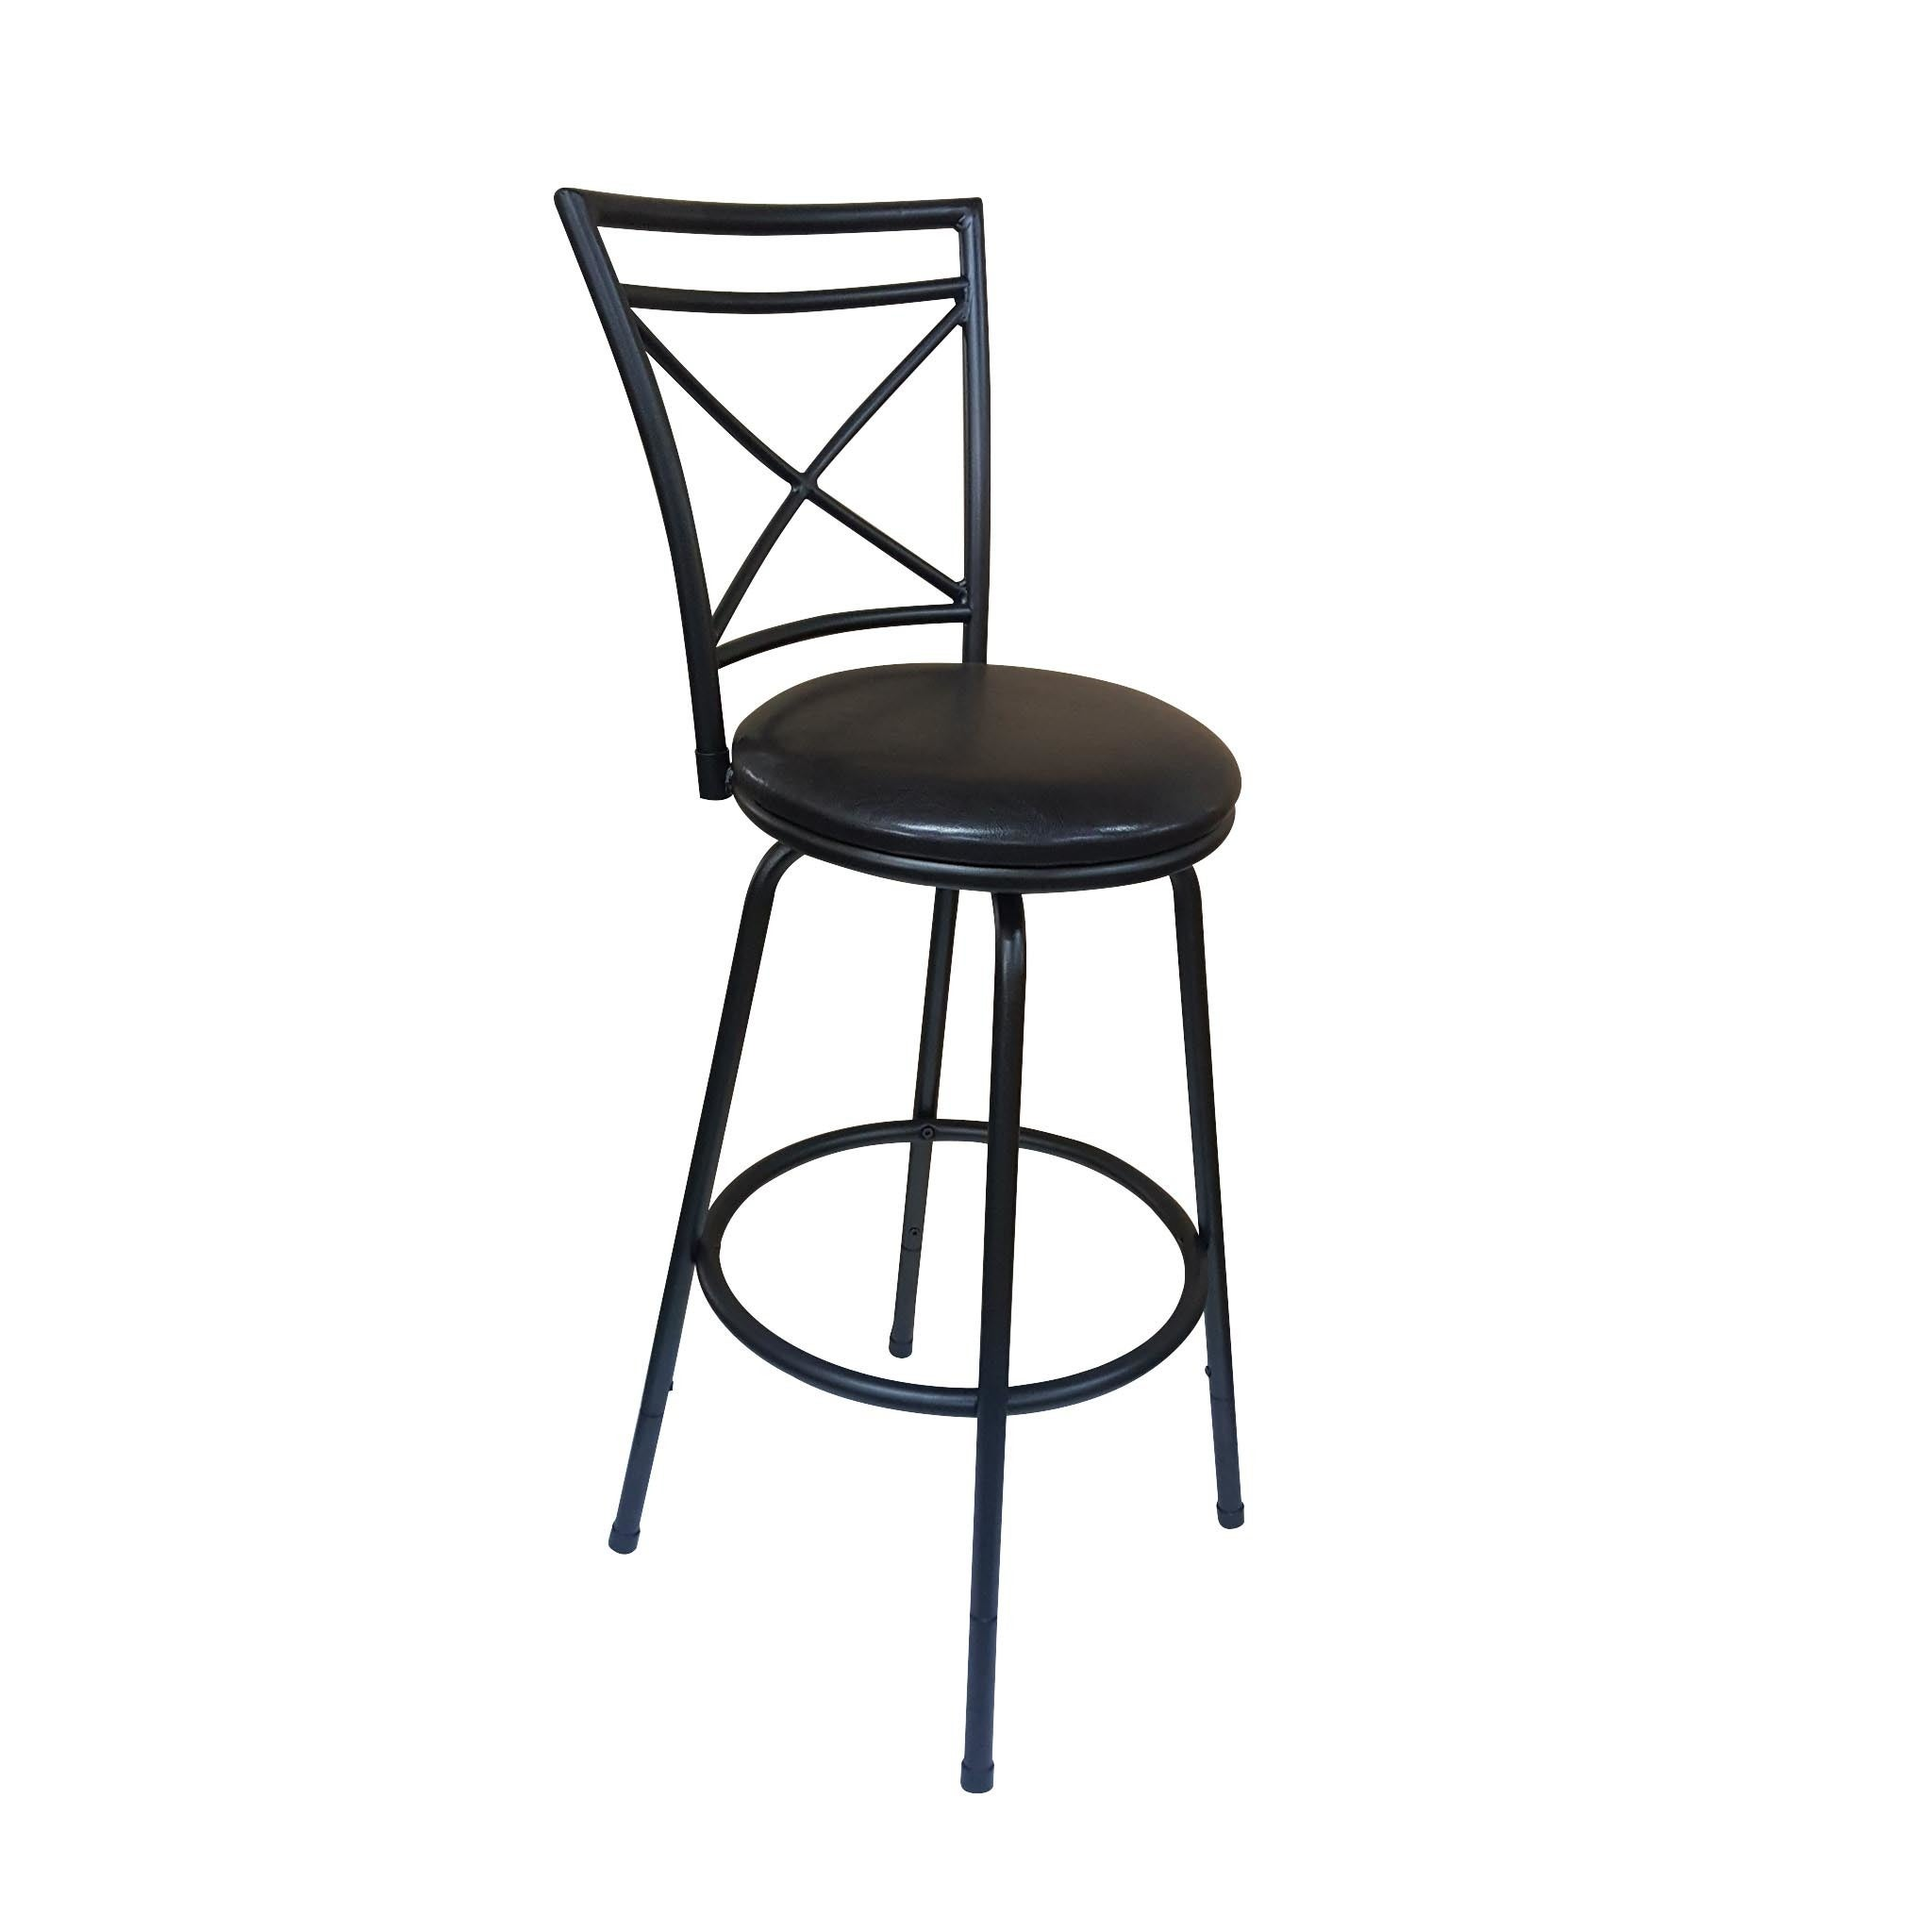 Porch & Den Botanical Heights Lafayette Black Metal and Faux Leather Adjustable Bar Stool